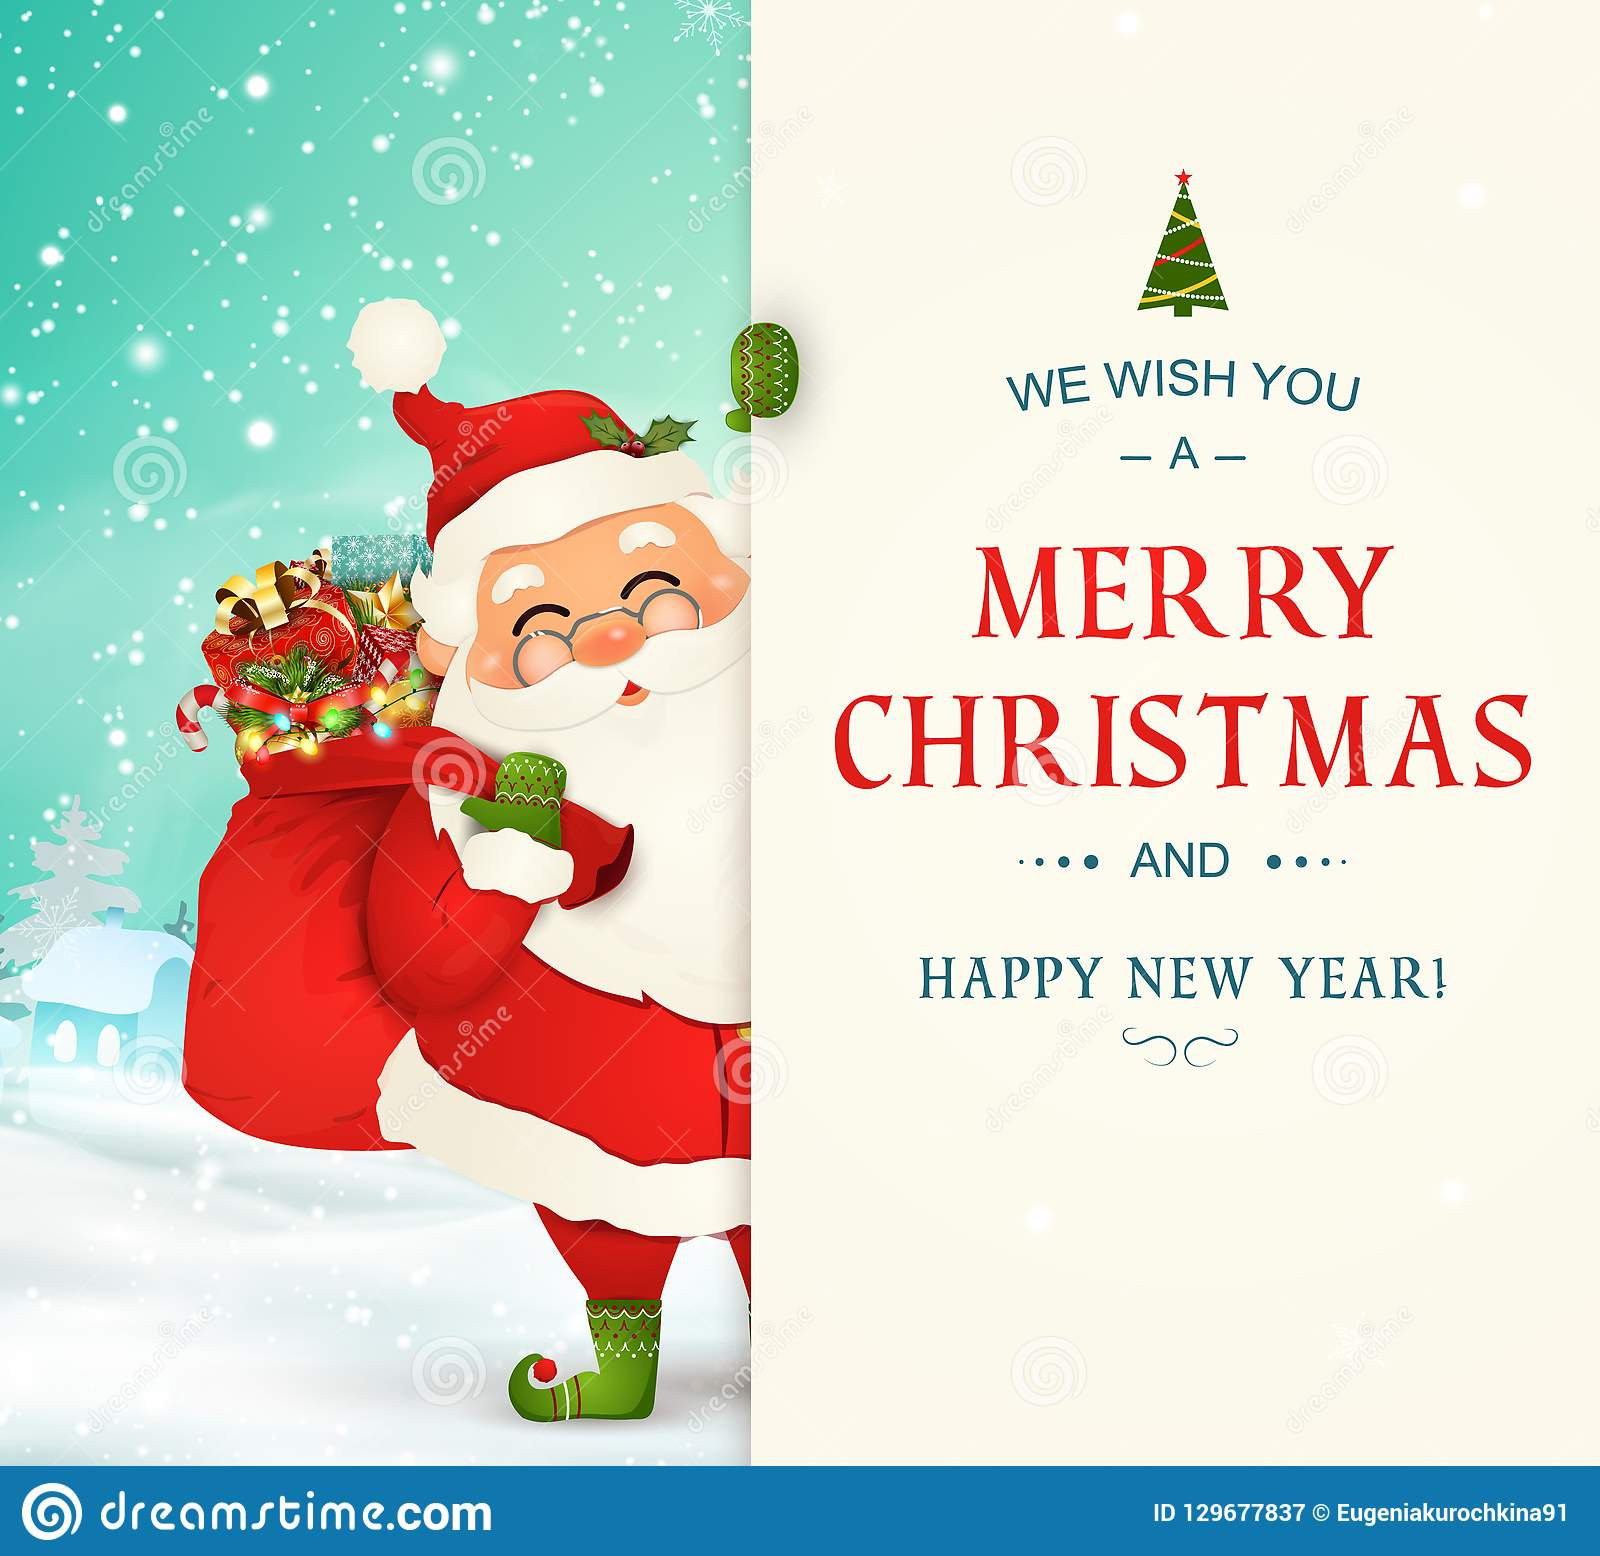 We Wish You A Merry Christmas. Happy New Year. Santa Claus Character ...